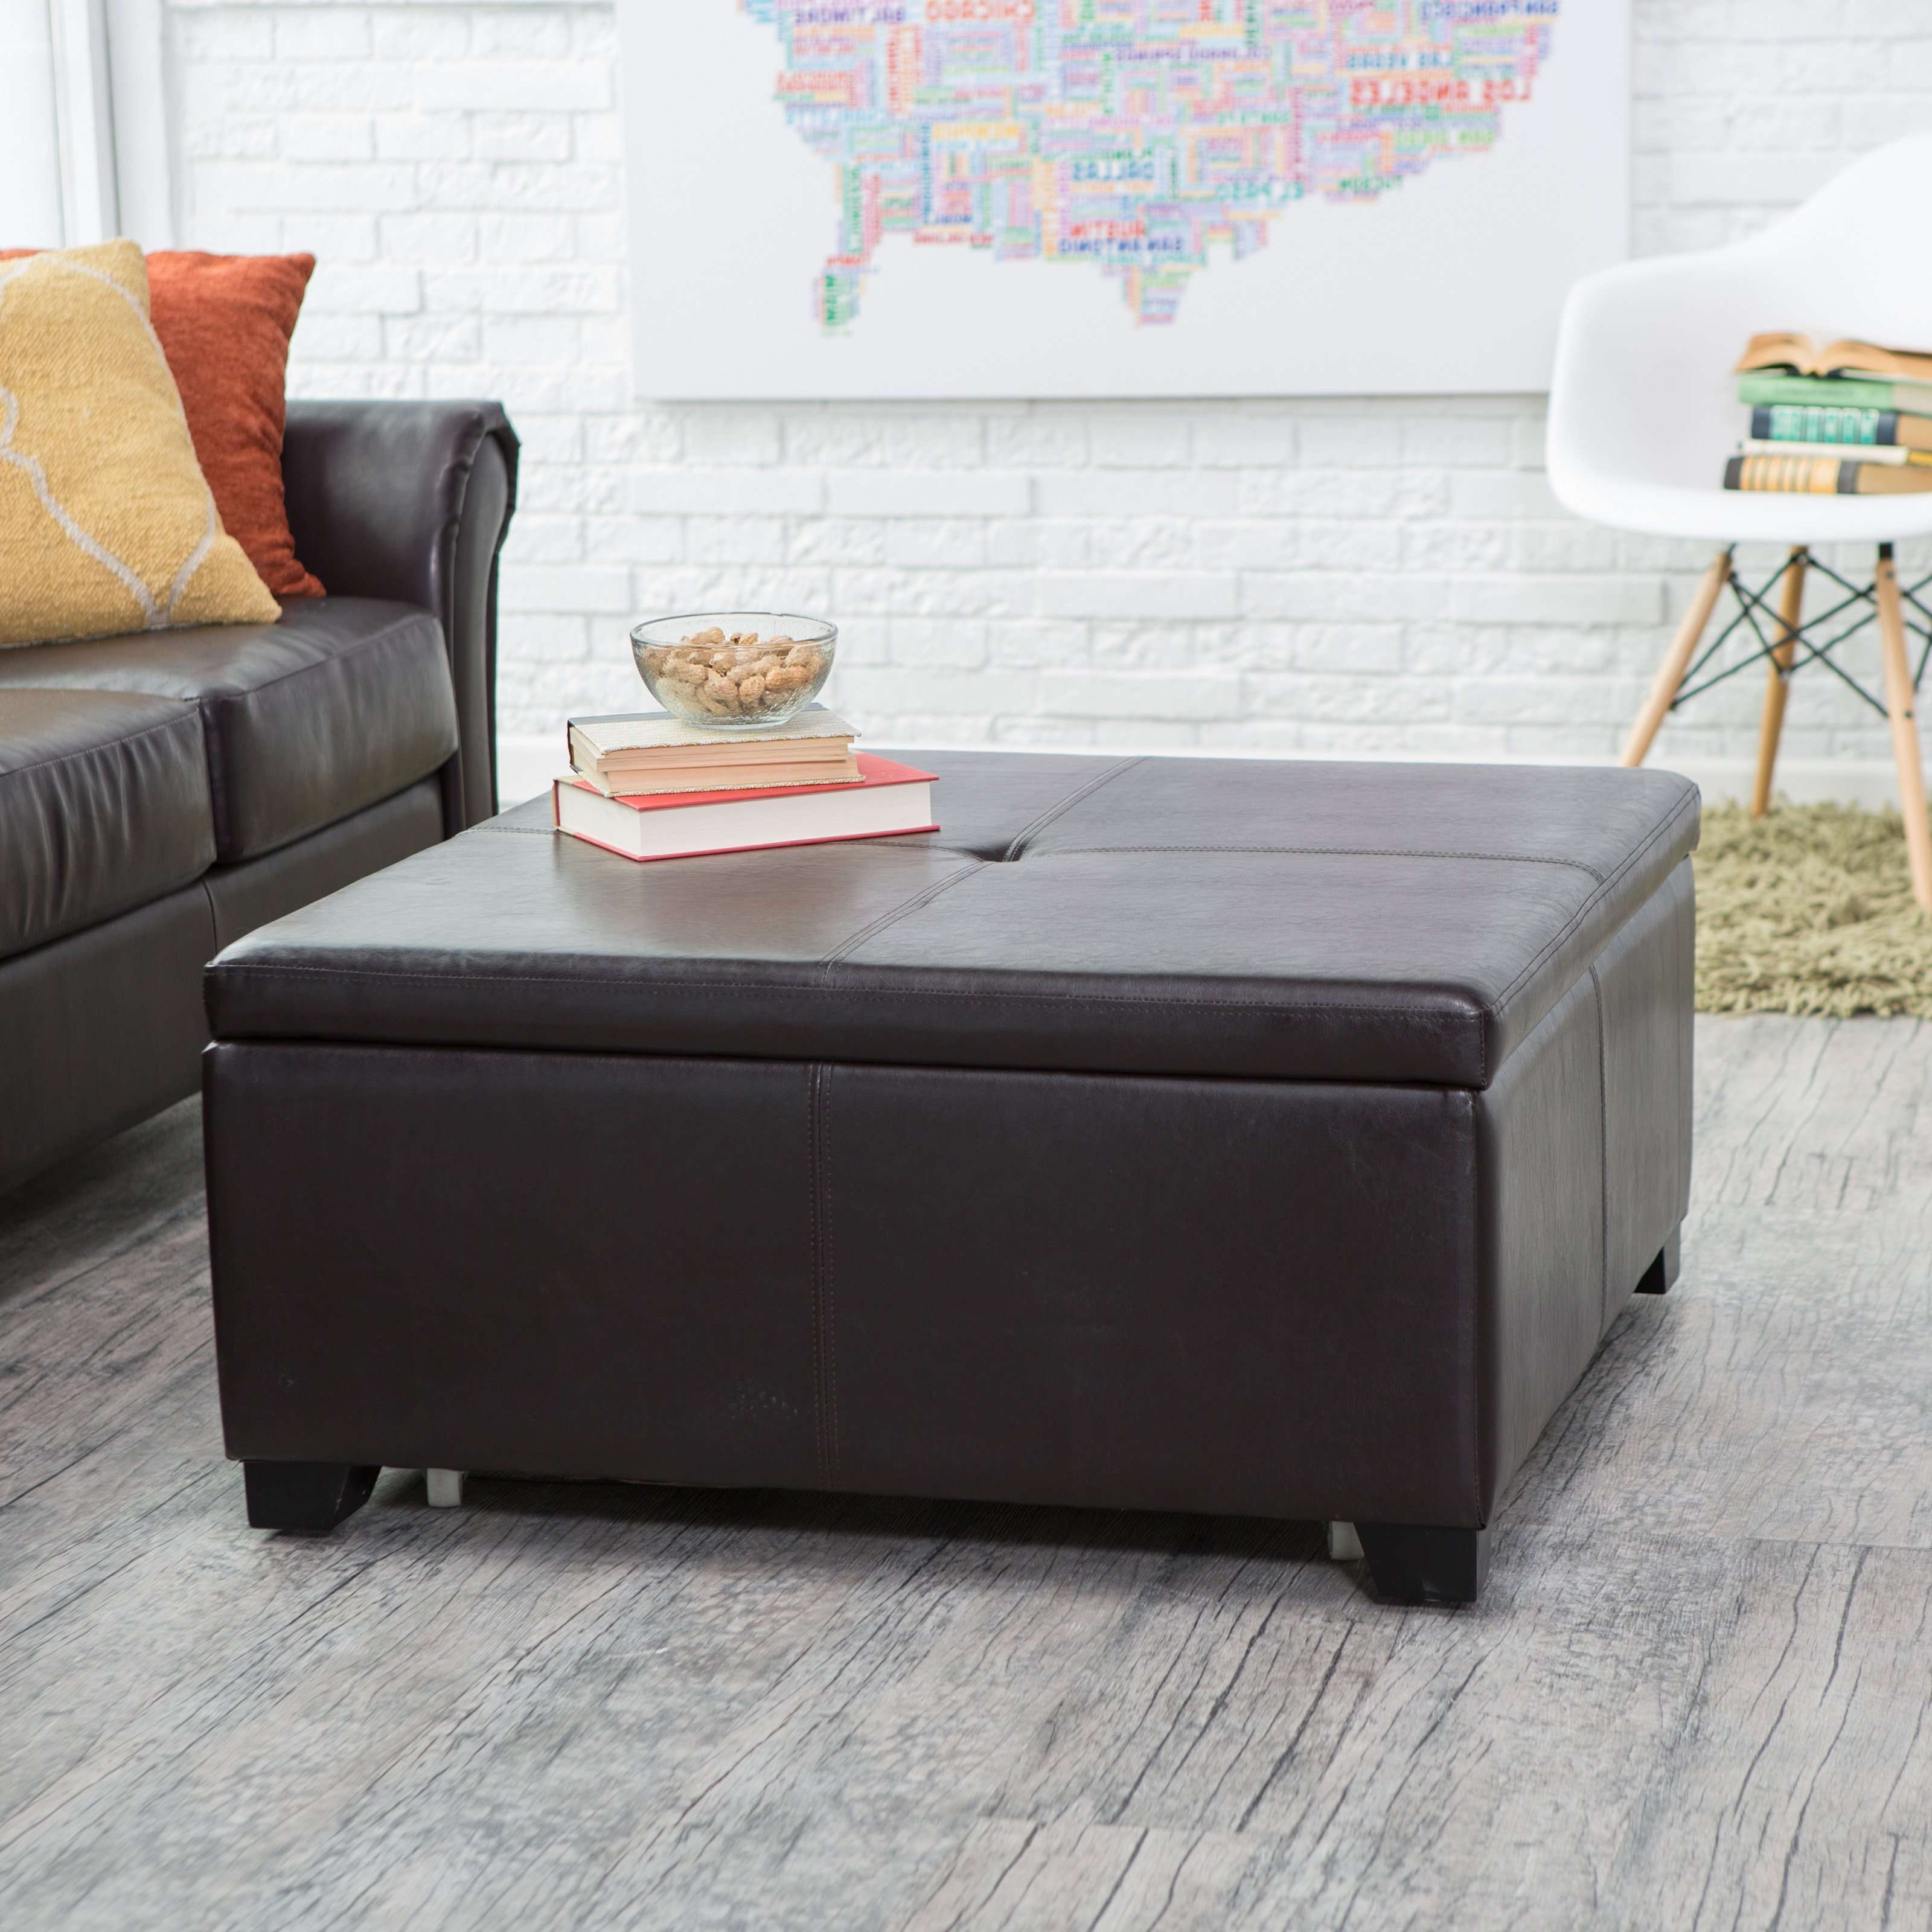 2018 Popular Round Coffee Table Storages